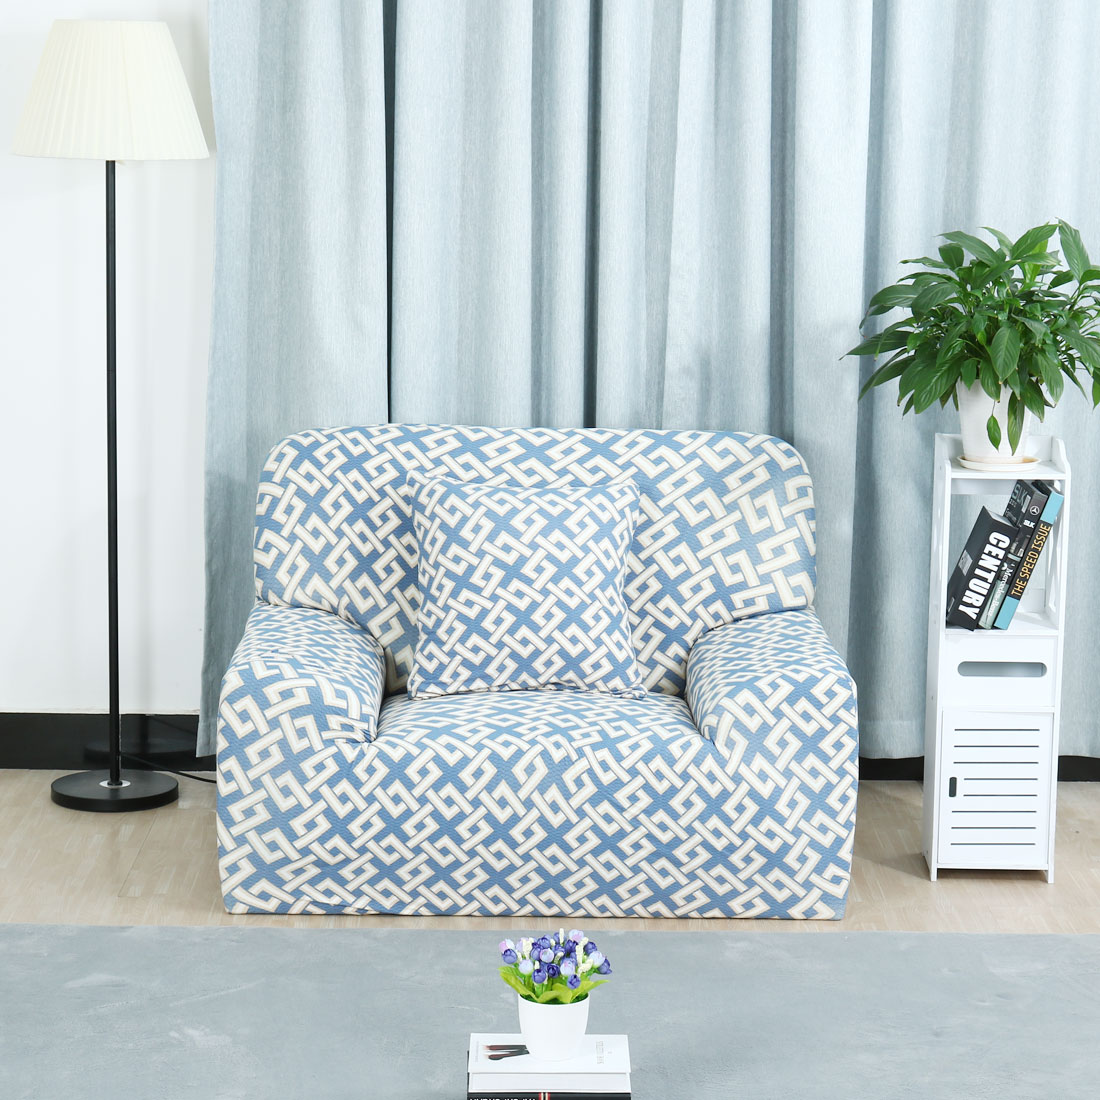 Chair Sofa Couch Covers Full Cover Slipcover Universal 5